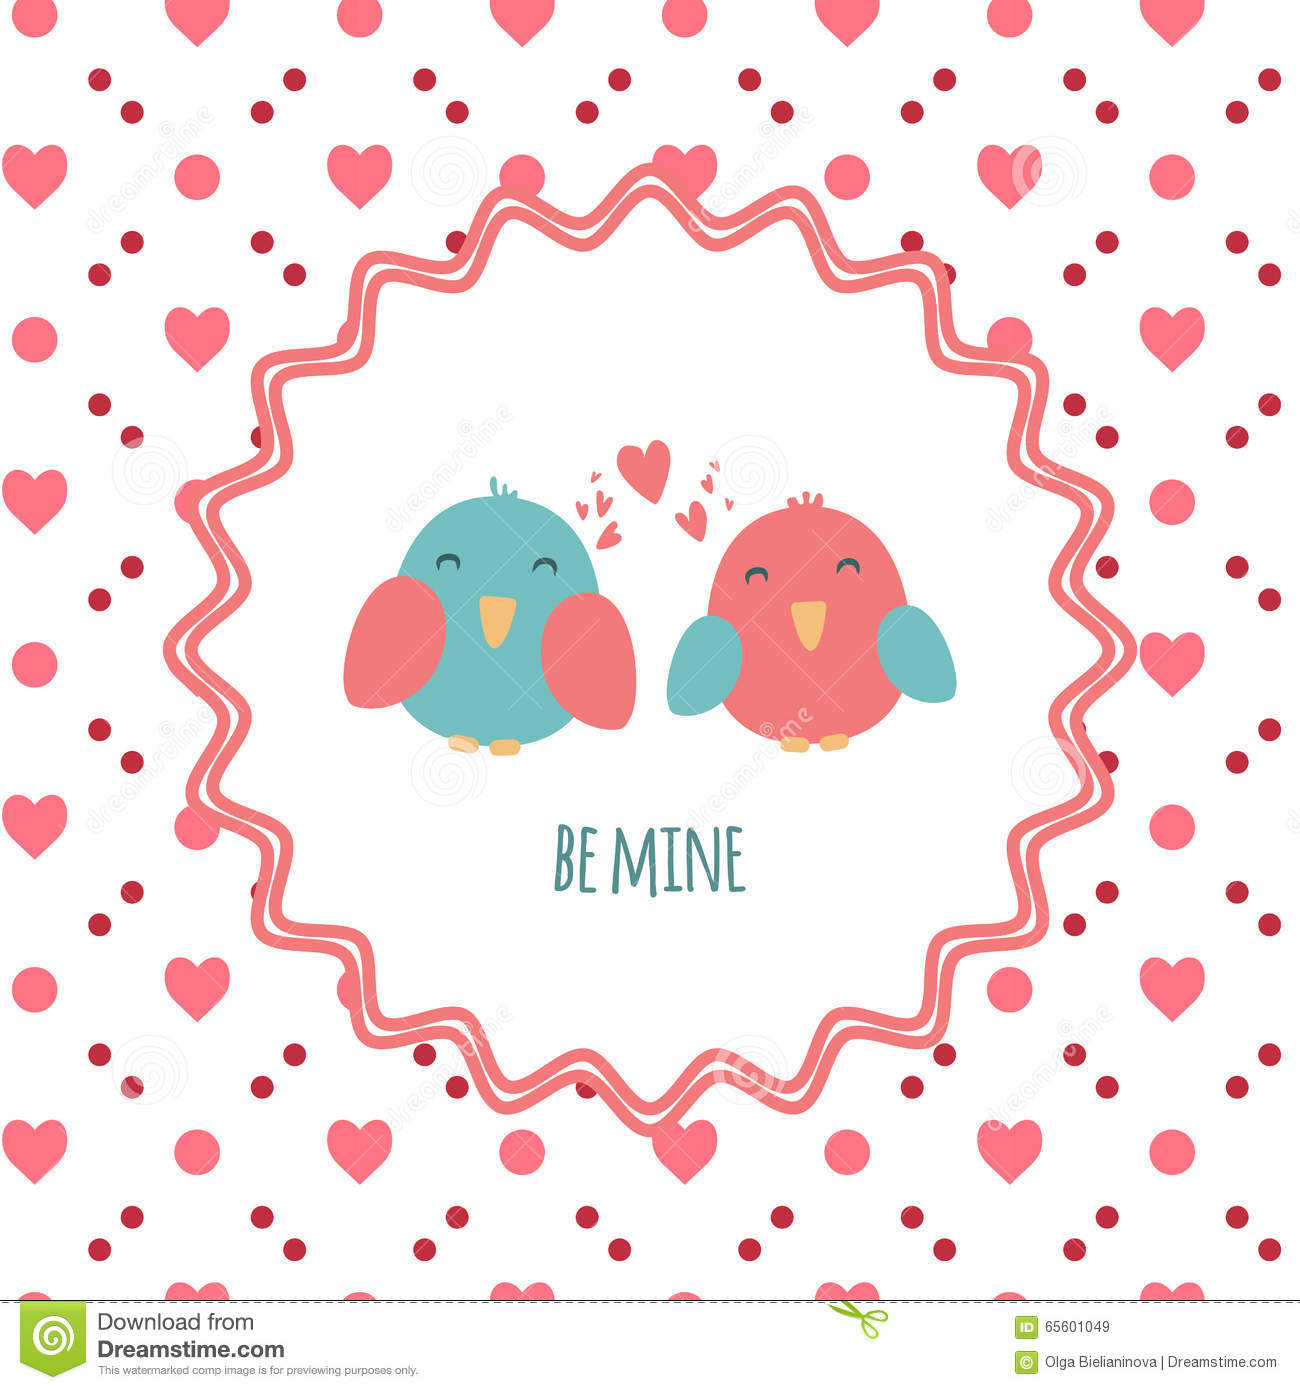 Be Mine Greeting Card With A Couple Of Cute Birds In Love To St – Saint Valentine Card